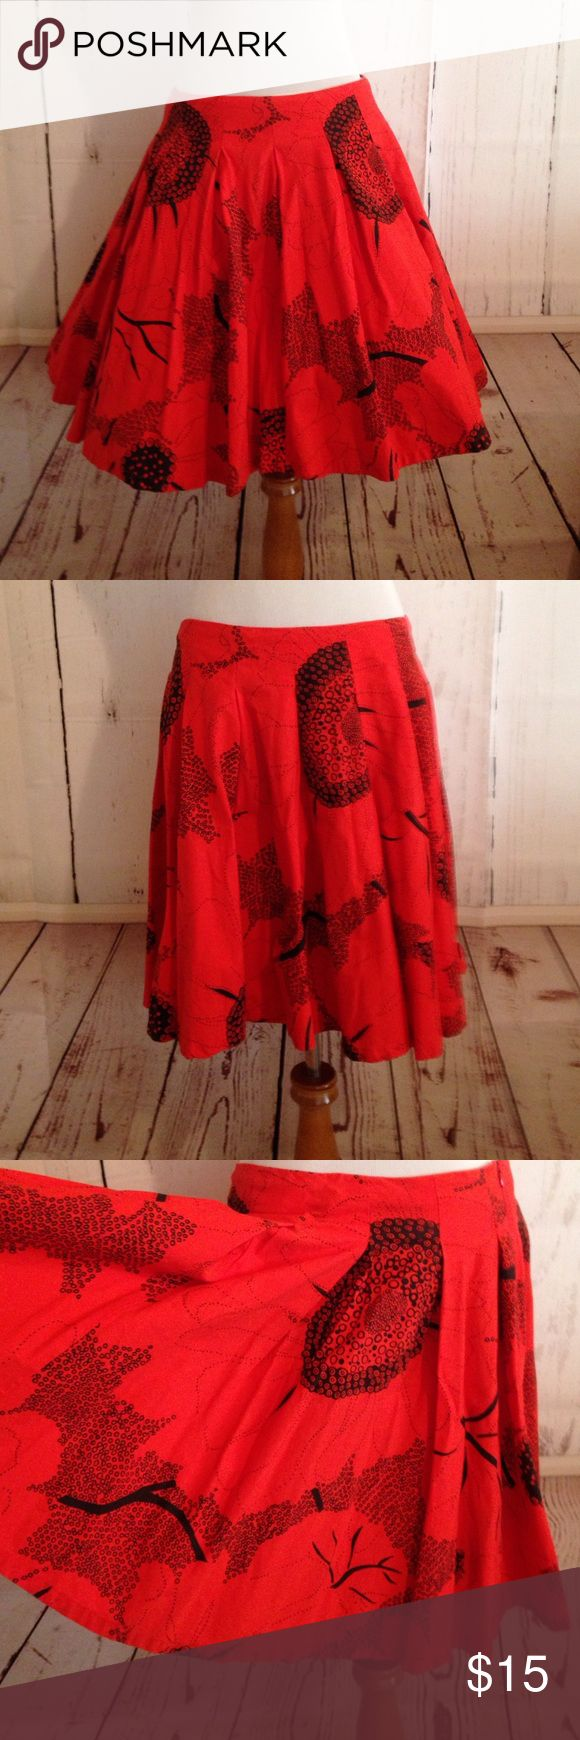 """Red and Black French Connection Circle Skirt size8 French Connection size 8 red floral print pleat skirt. Side zipper. 100% Cotton.  Waist 29"""" length 20"""". In good used condition some fading but still bright. First picture has a crinoline under skirt that is not included. French Connection Skirts Circle & Skater"""